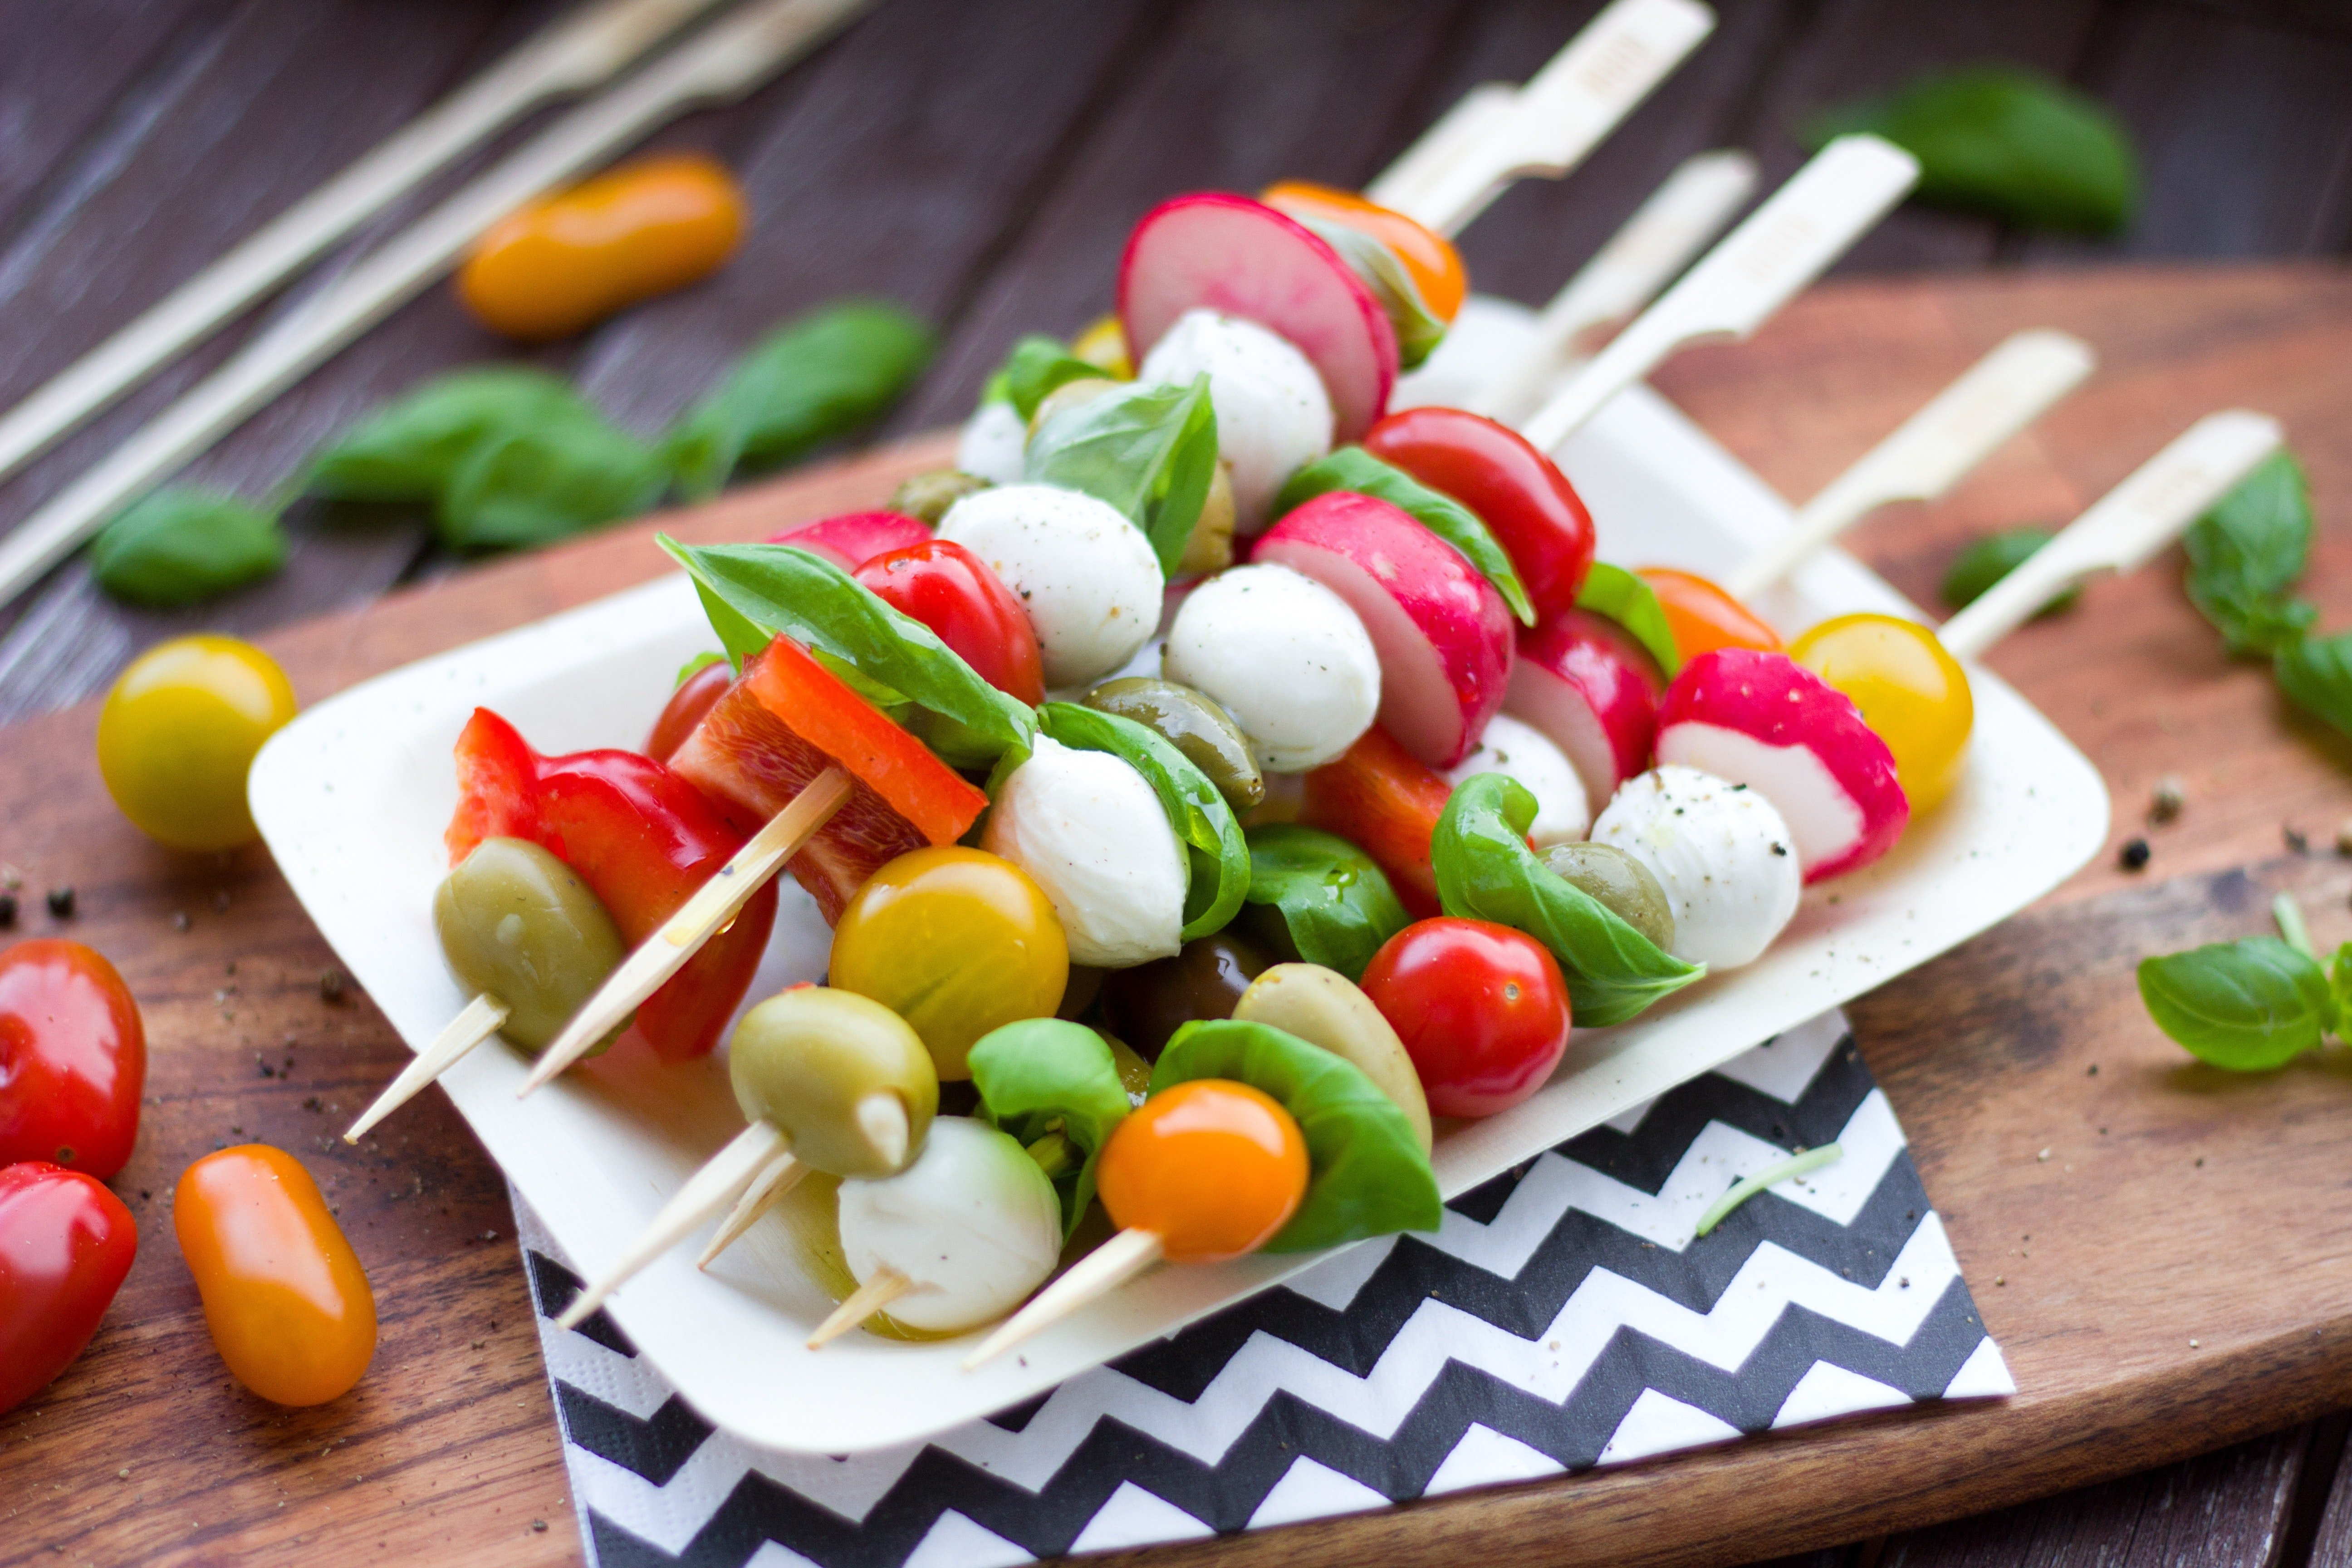 appetizing-barbecue-basil-461380